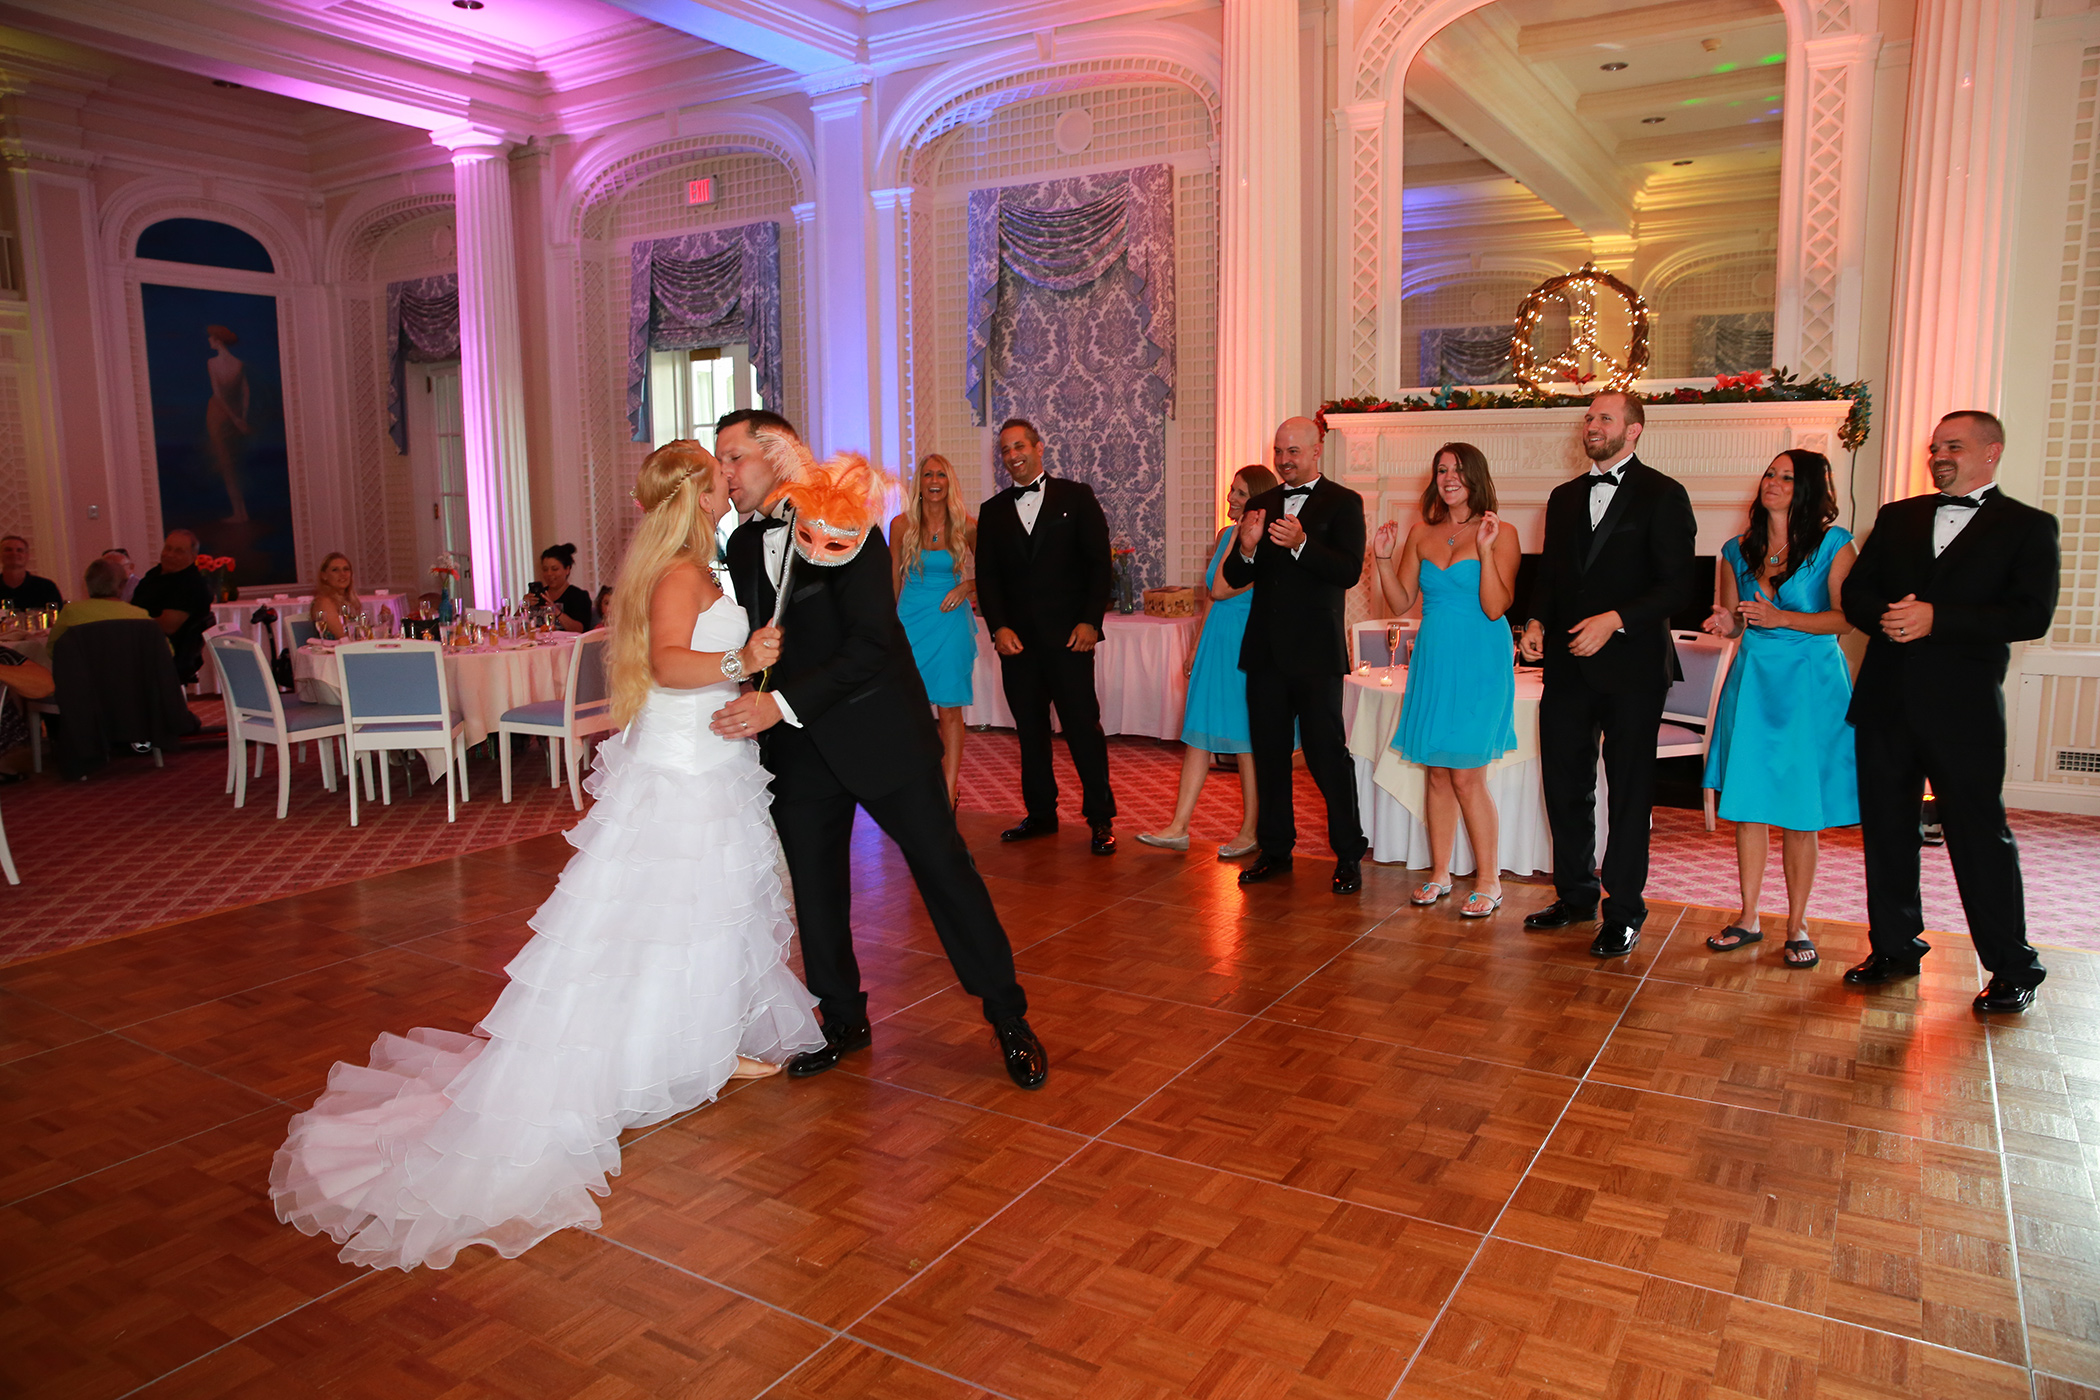 First dance wedding photo by Aperture Photography